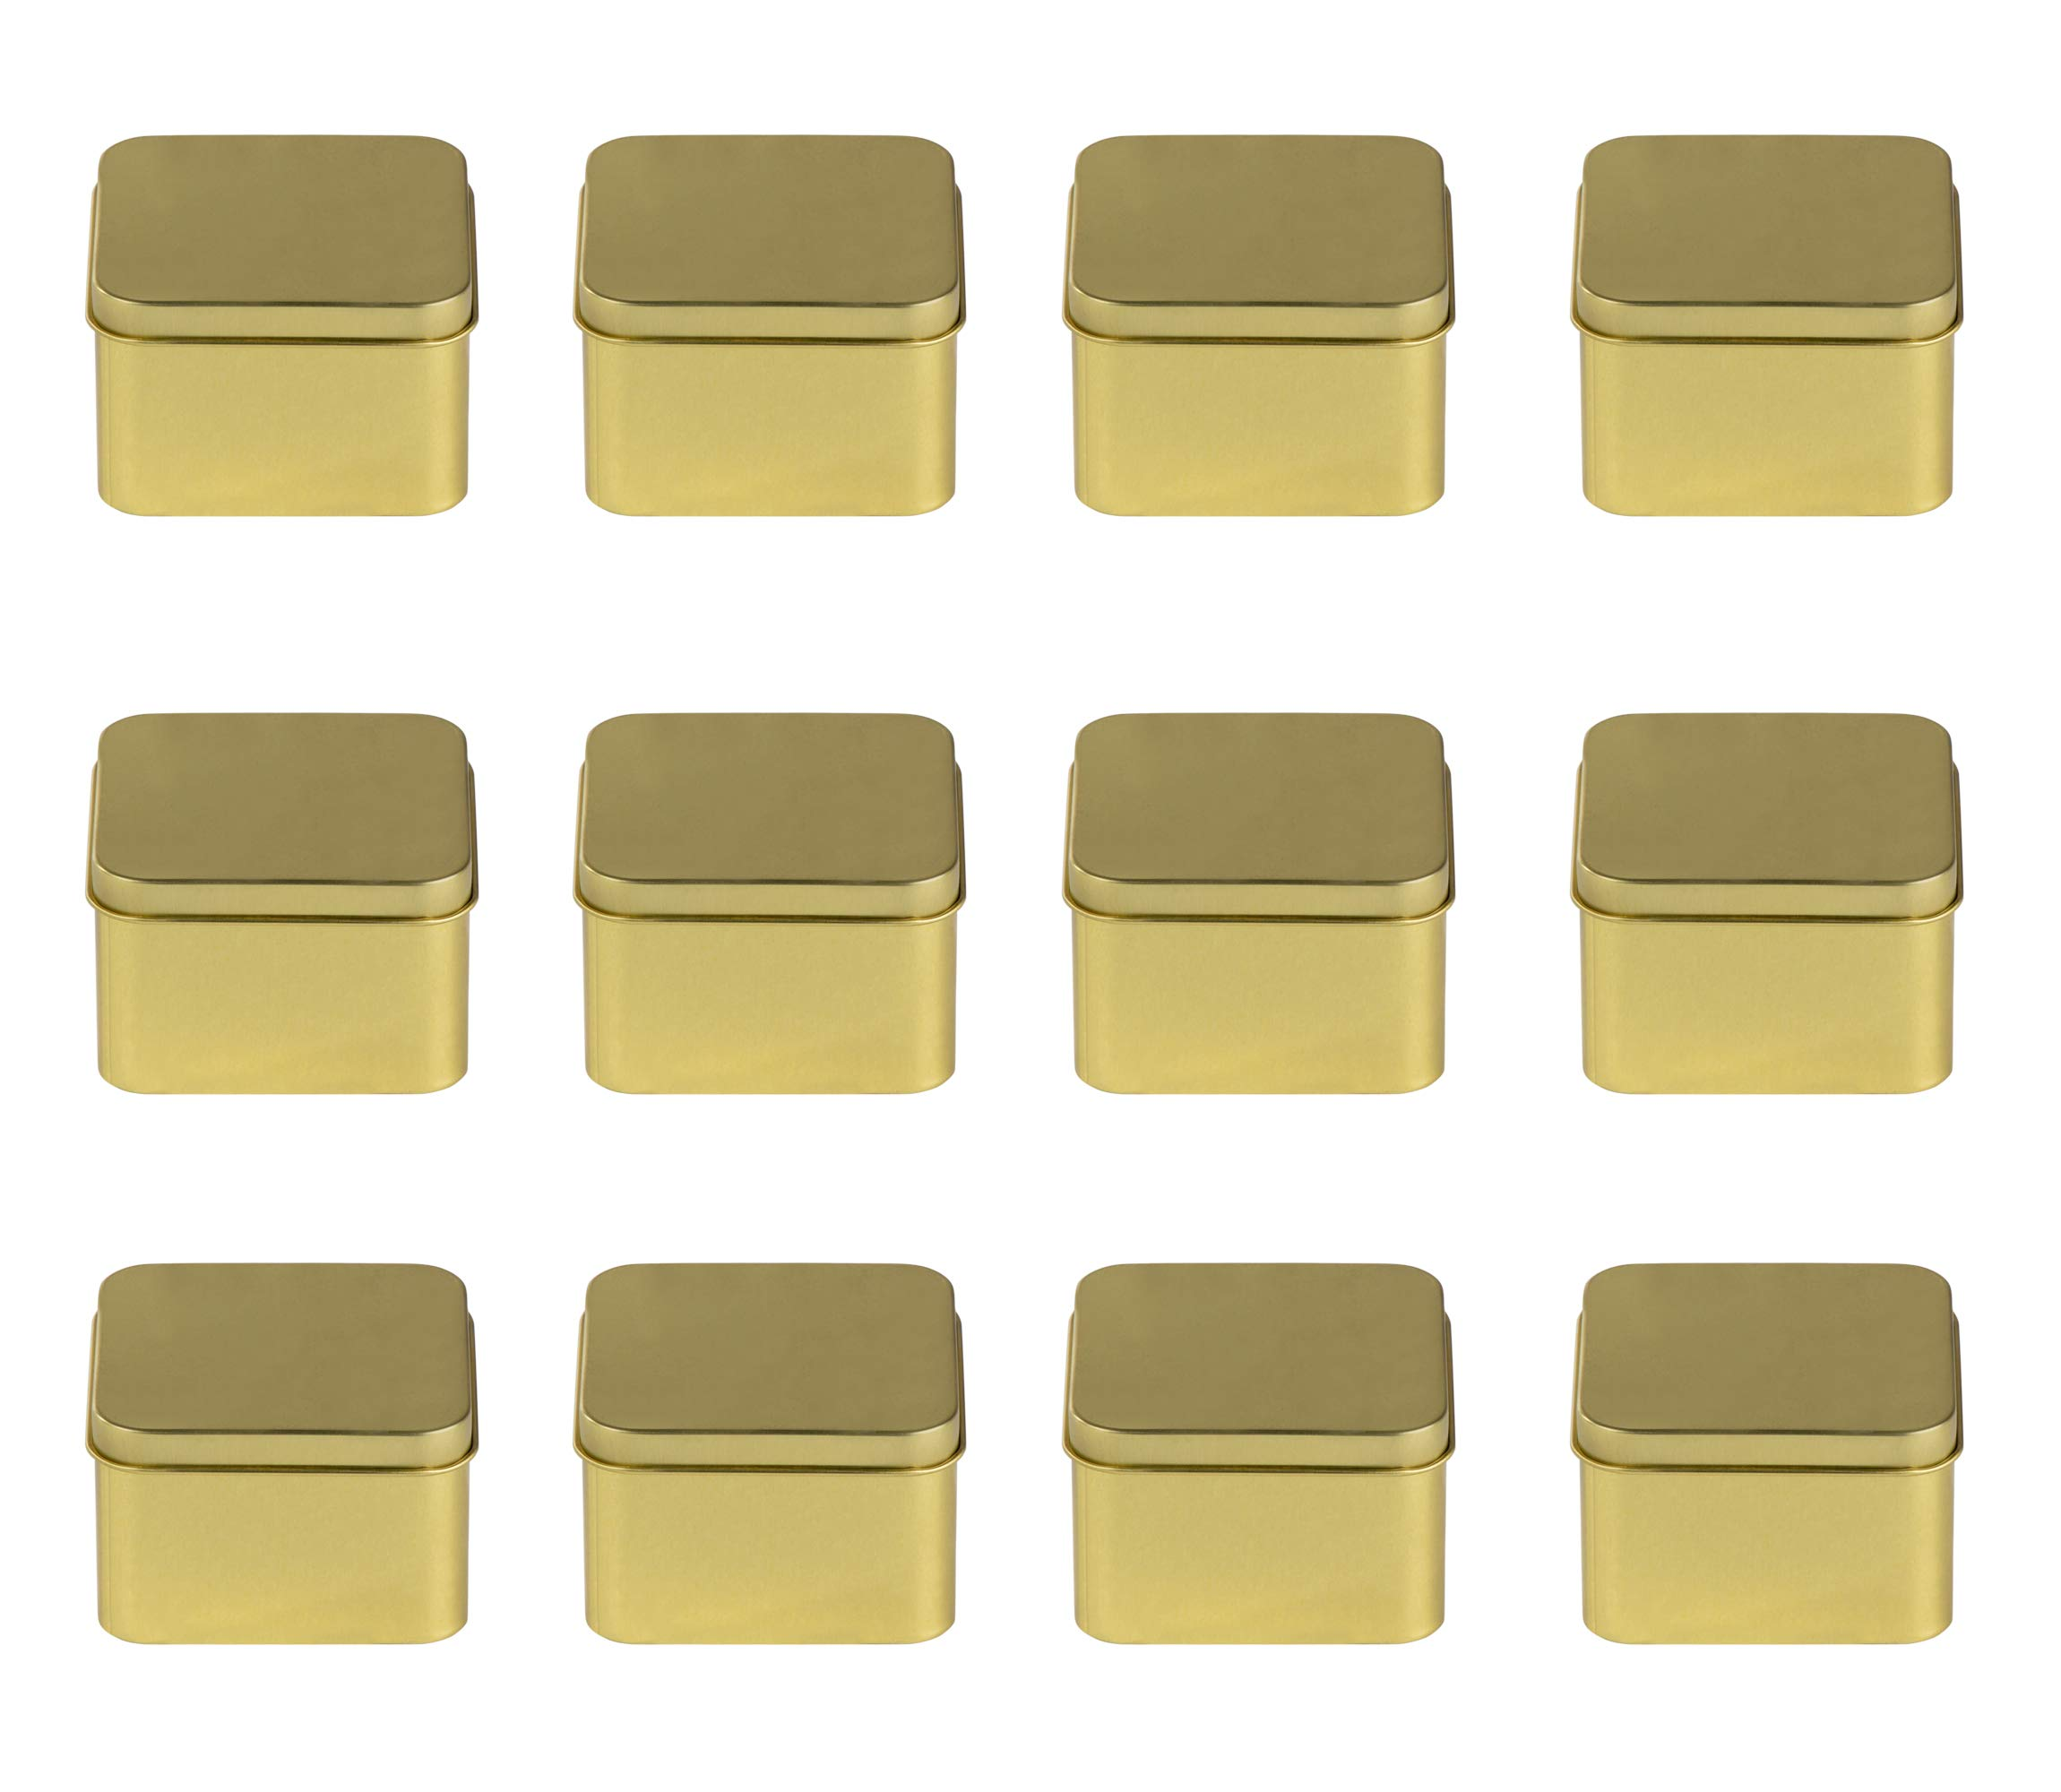 Juvale Square Tin Can with Lid - 12-Pack 6-Ounce Empty Cube Steel Box Storage Container for Treats, Gifts, Favors and Crafts, Gold, 2.5 x 1.75 x 2.5 Inches